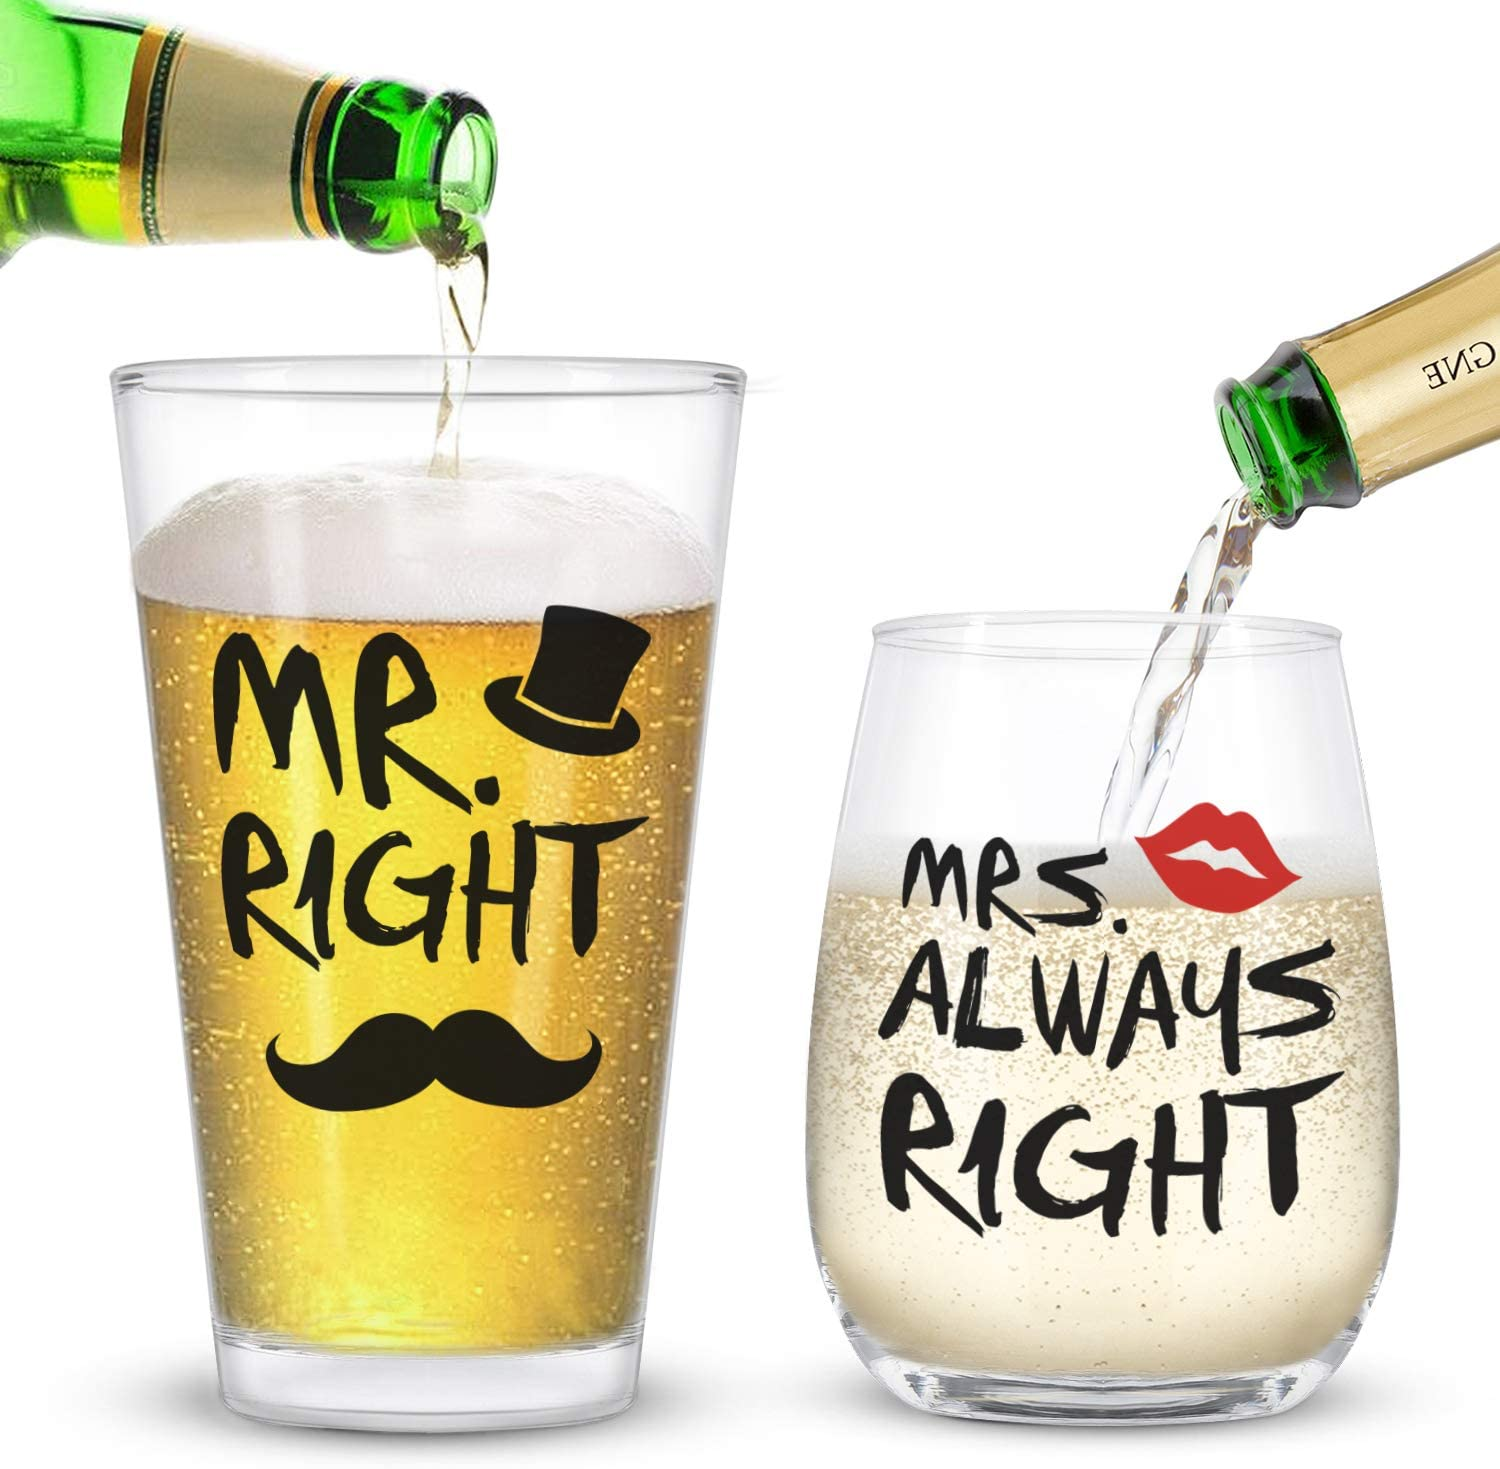 Mr. Right and Mrs. Always Right Stemless Wine Glass and Beer Glass Funny Present for Her Him Newlywed Couples -Ideal for Wedding Anniversary Valentine's Day Birthday